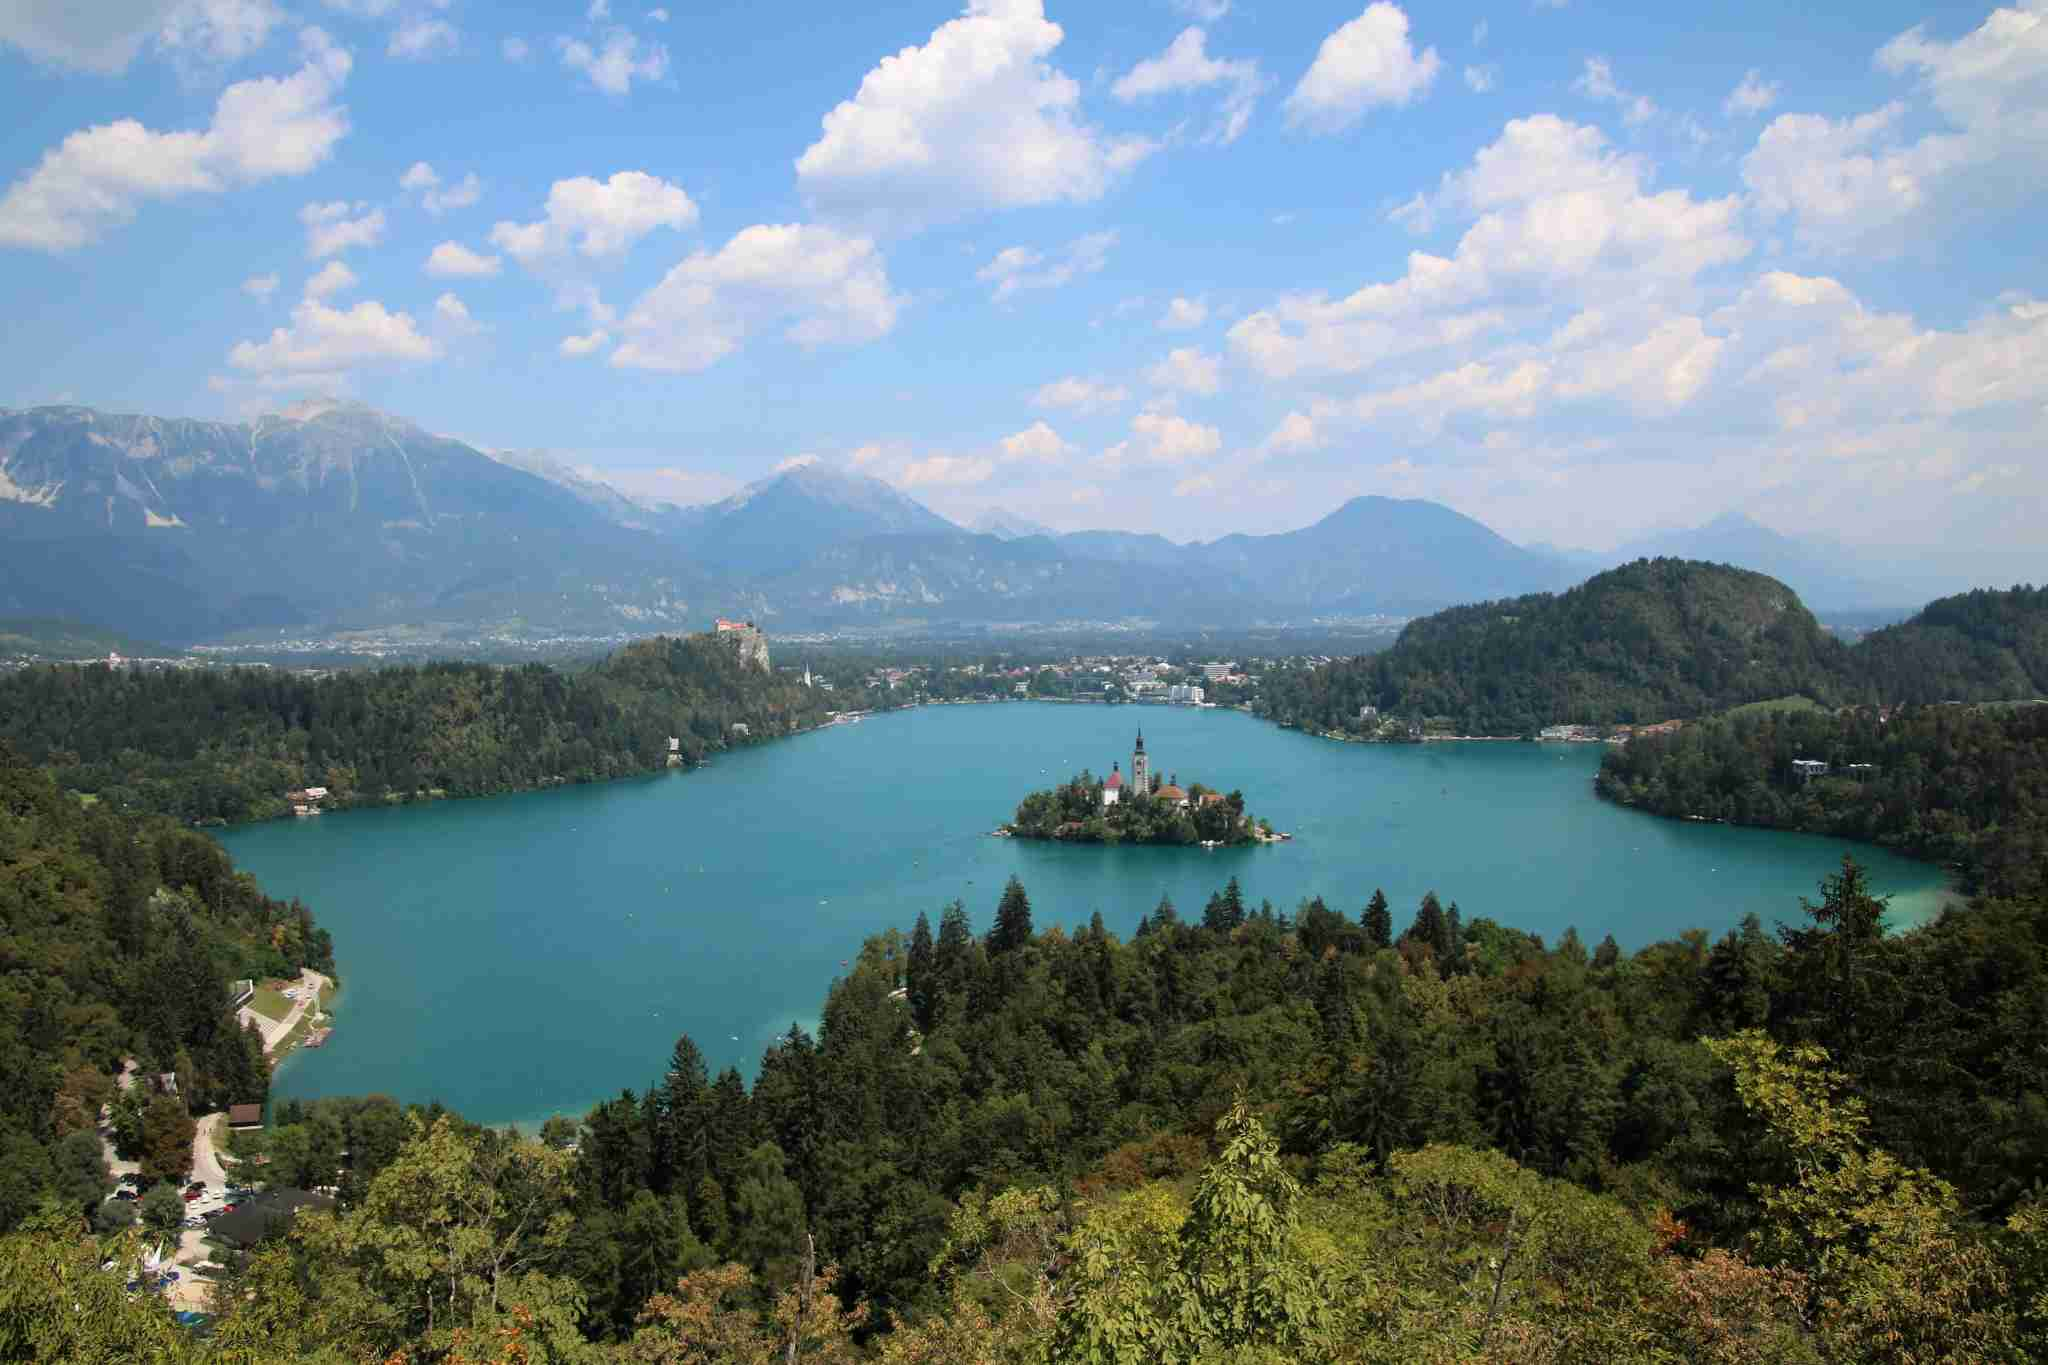 In addition to the remote regions, the trail also passes through the famous town of Bled. Image courtesy of the author.